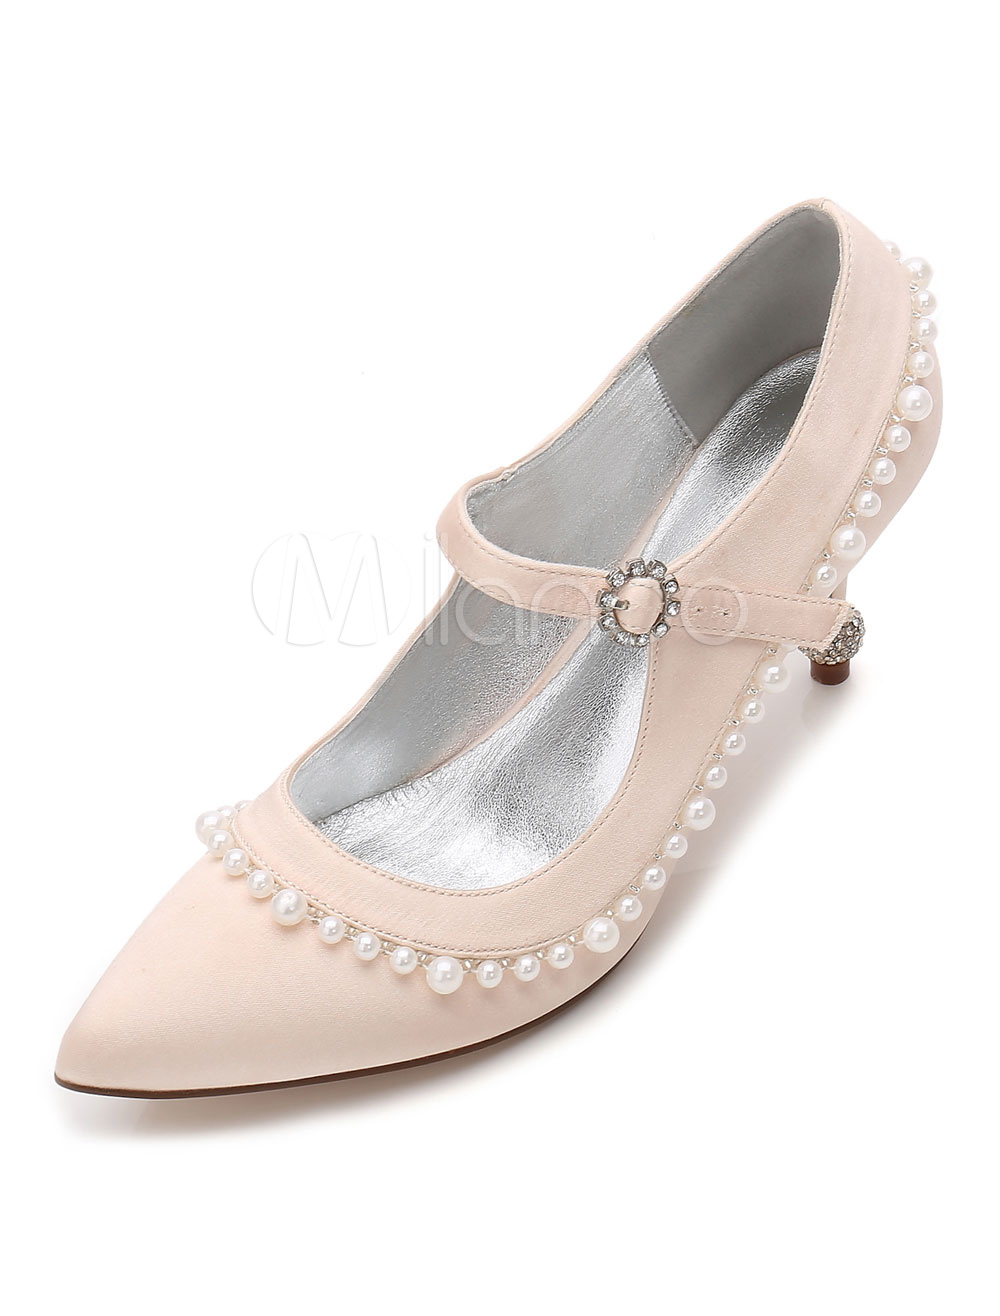 Champagne Bridesmaid Shoes Satin Pointed Toe Pearls Wedding Shoes